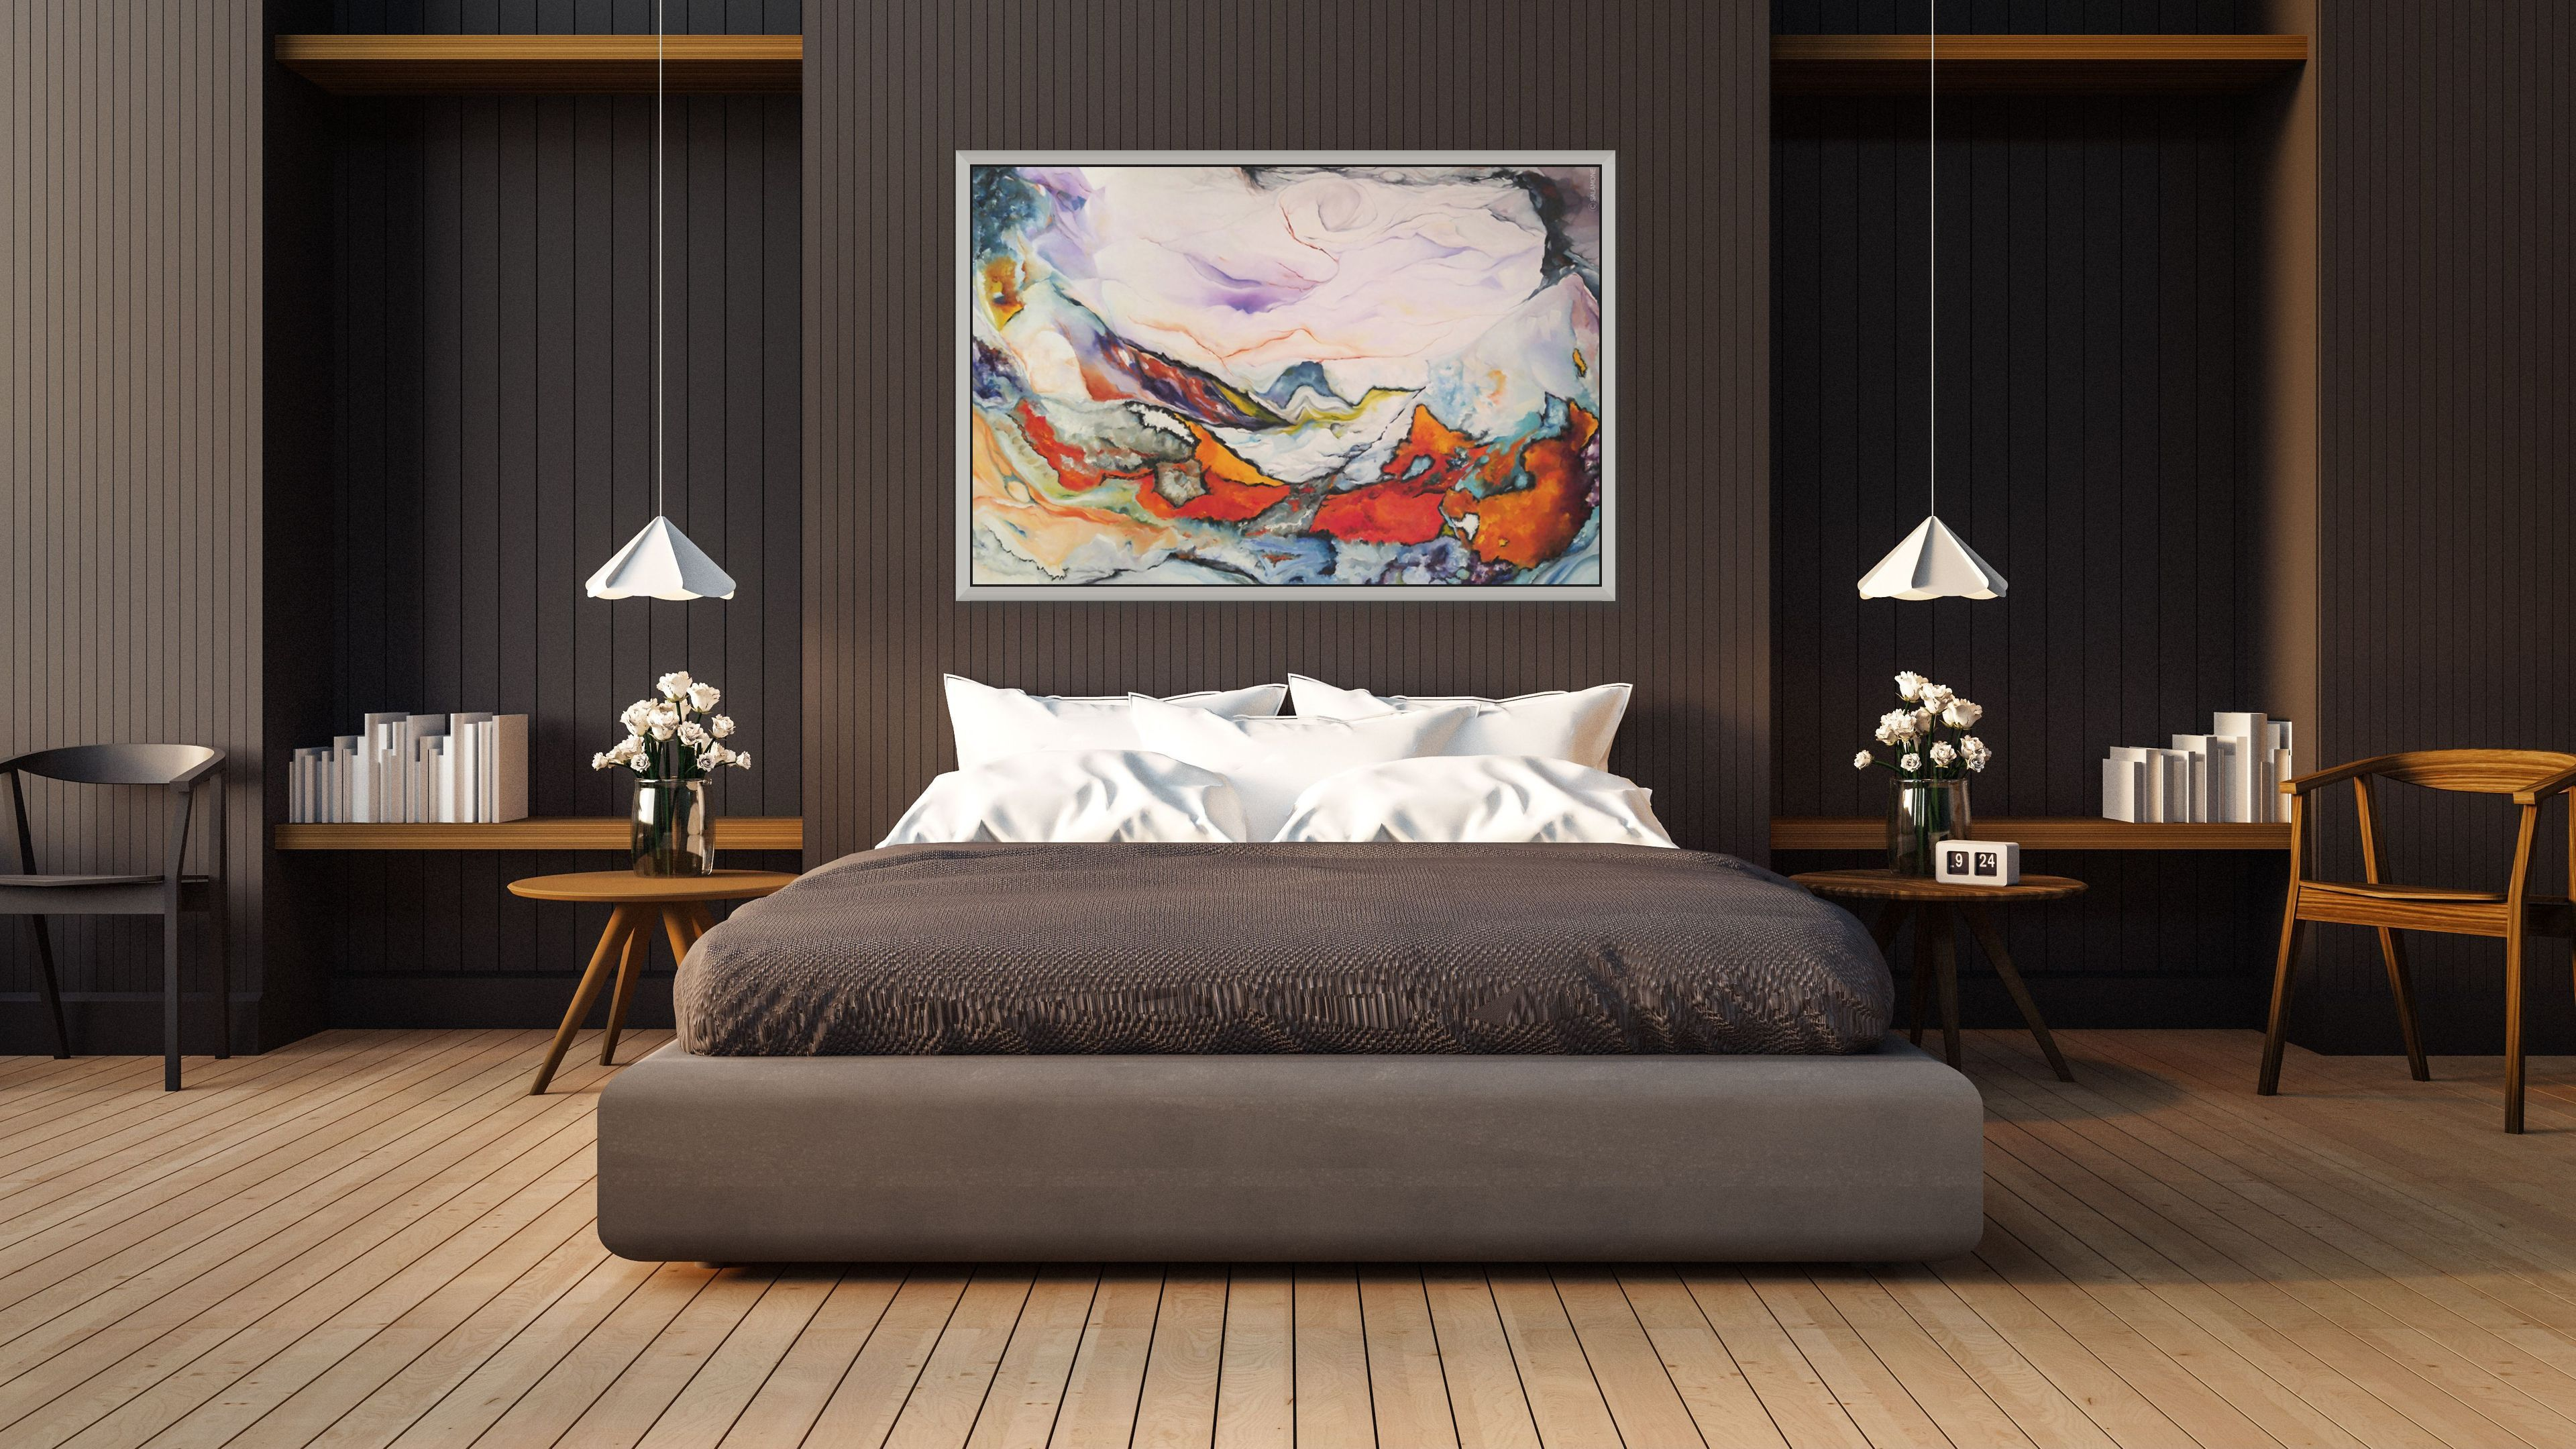 Emerging by Brenda Salamone hangs in dark-toned bedroom